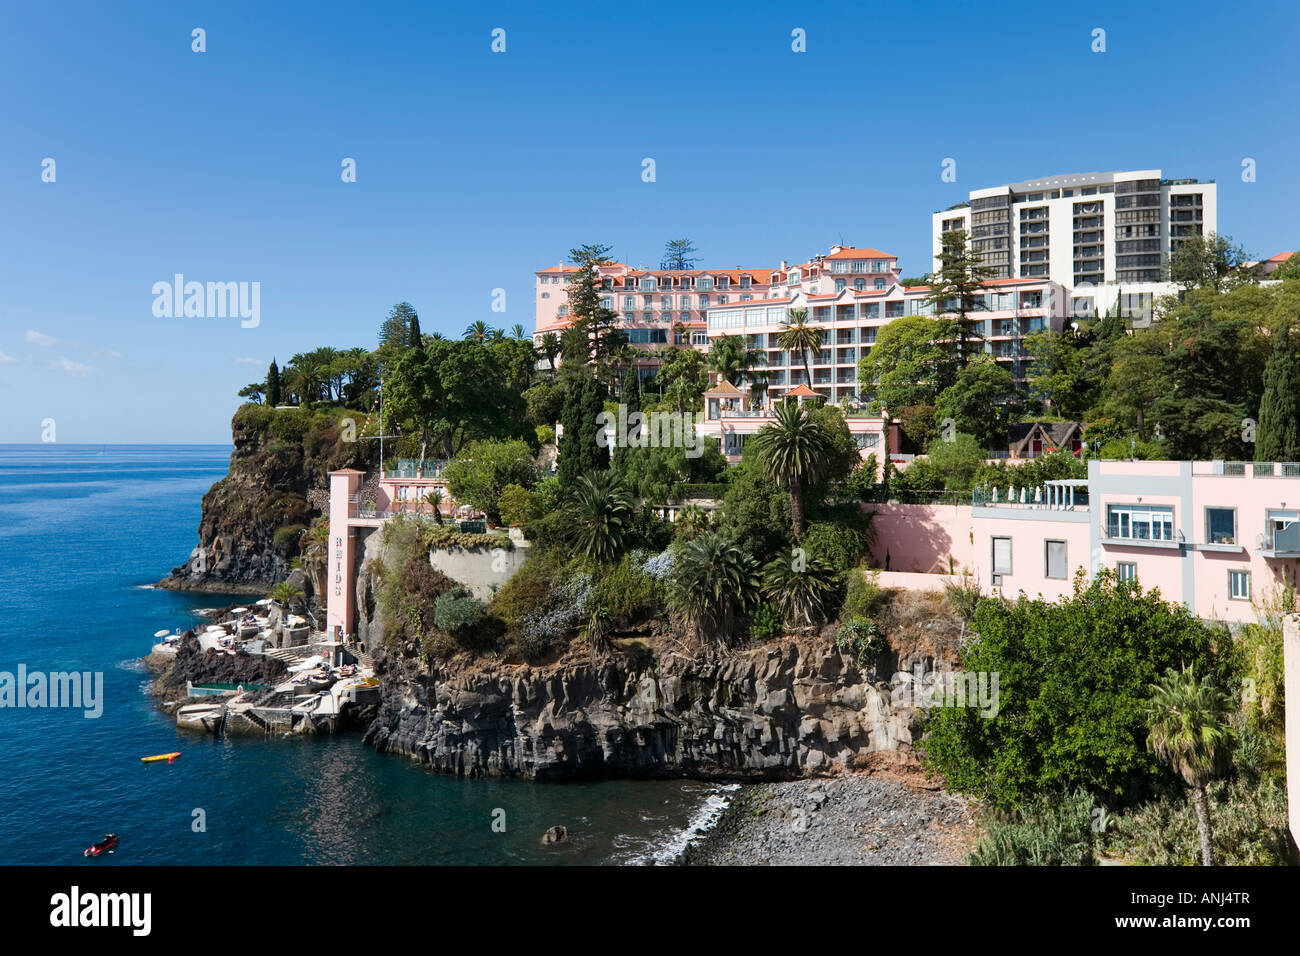 Reids Palace Hotel from Royal Savoy, Funchal, Madeira, Portugal - Stock Image